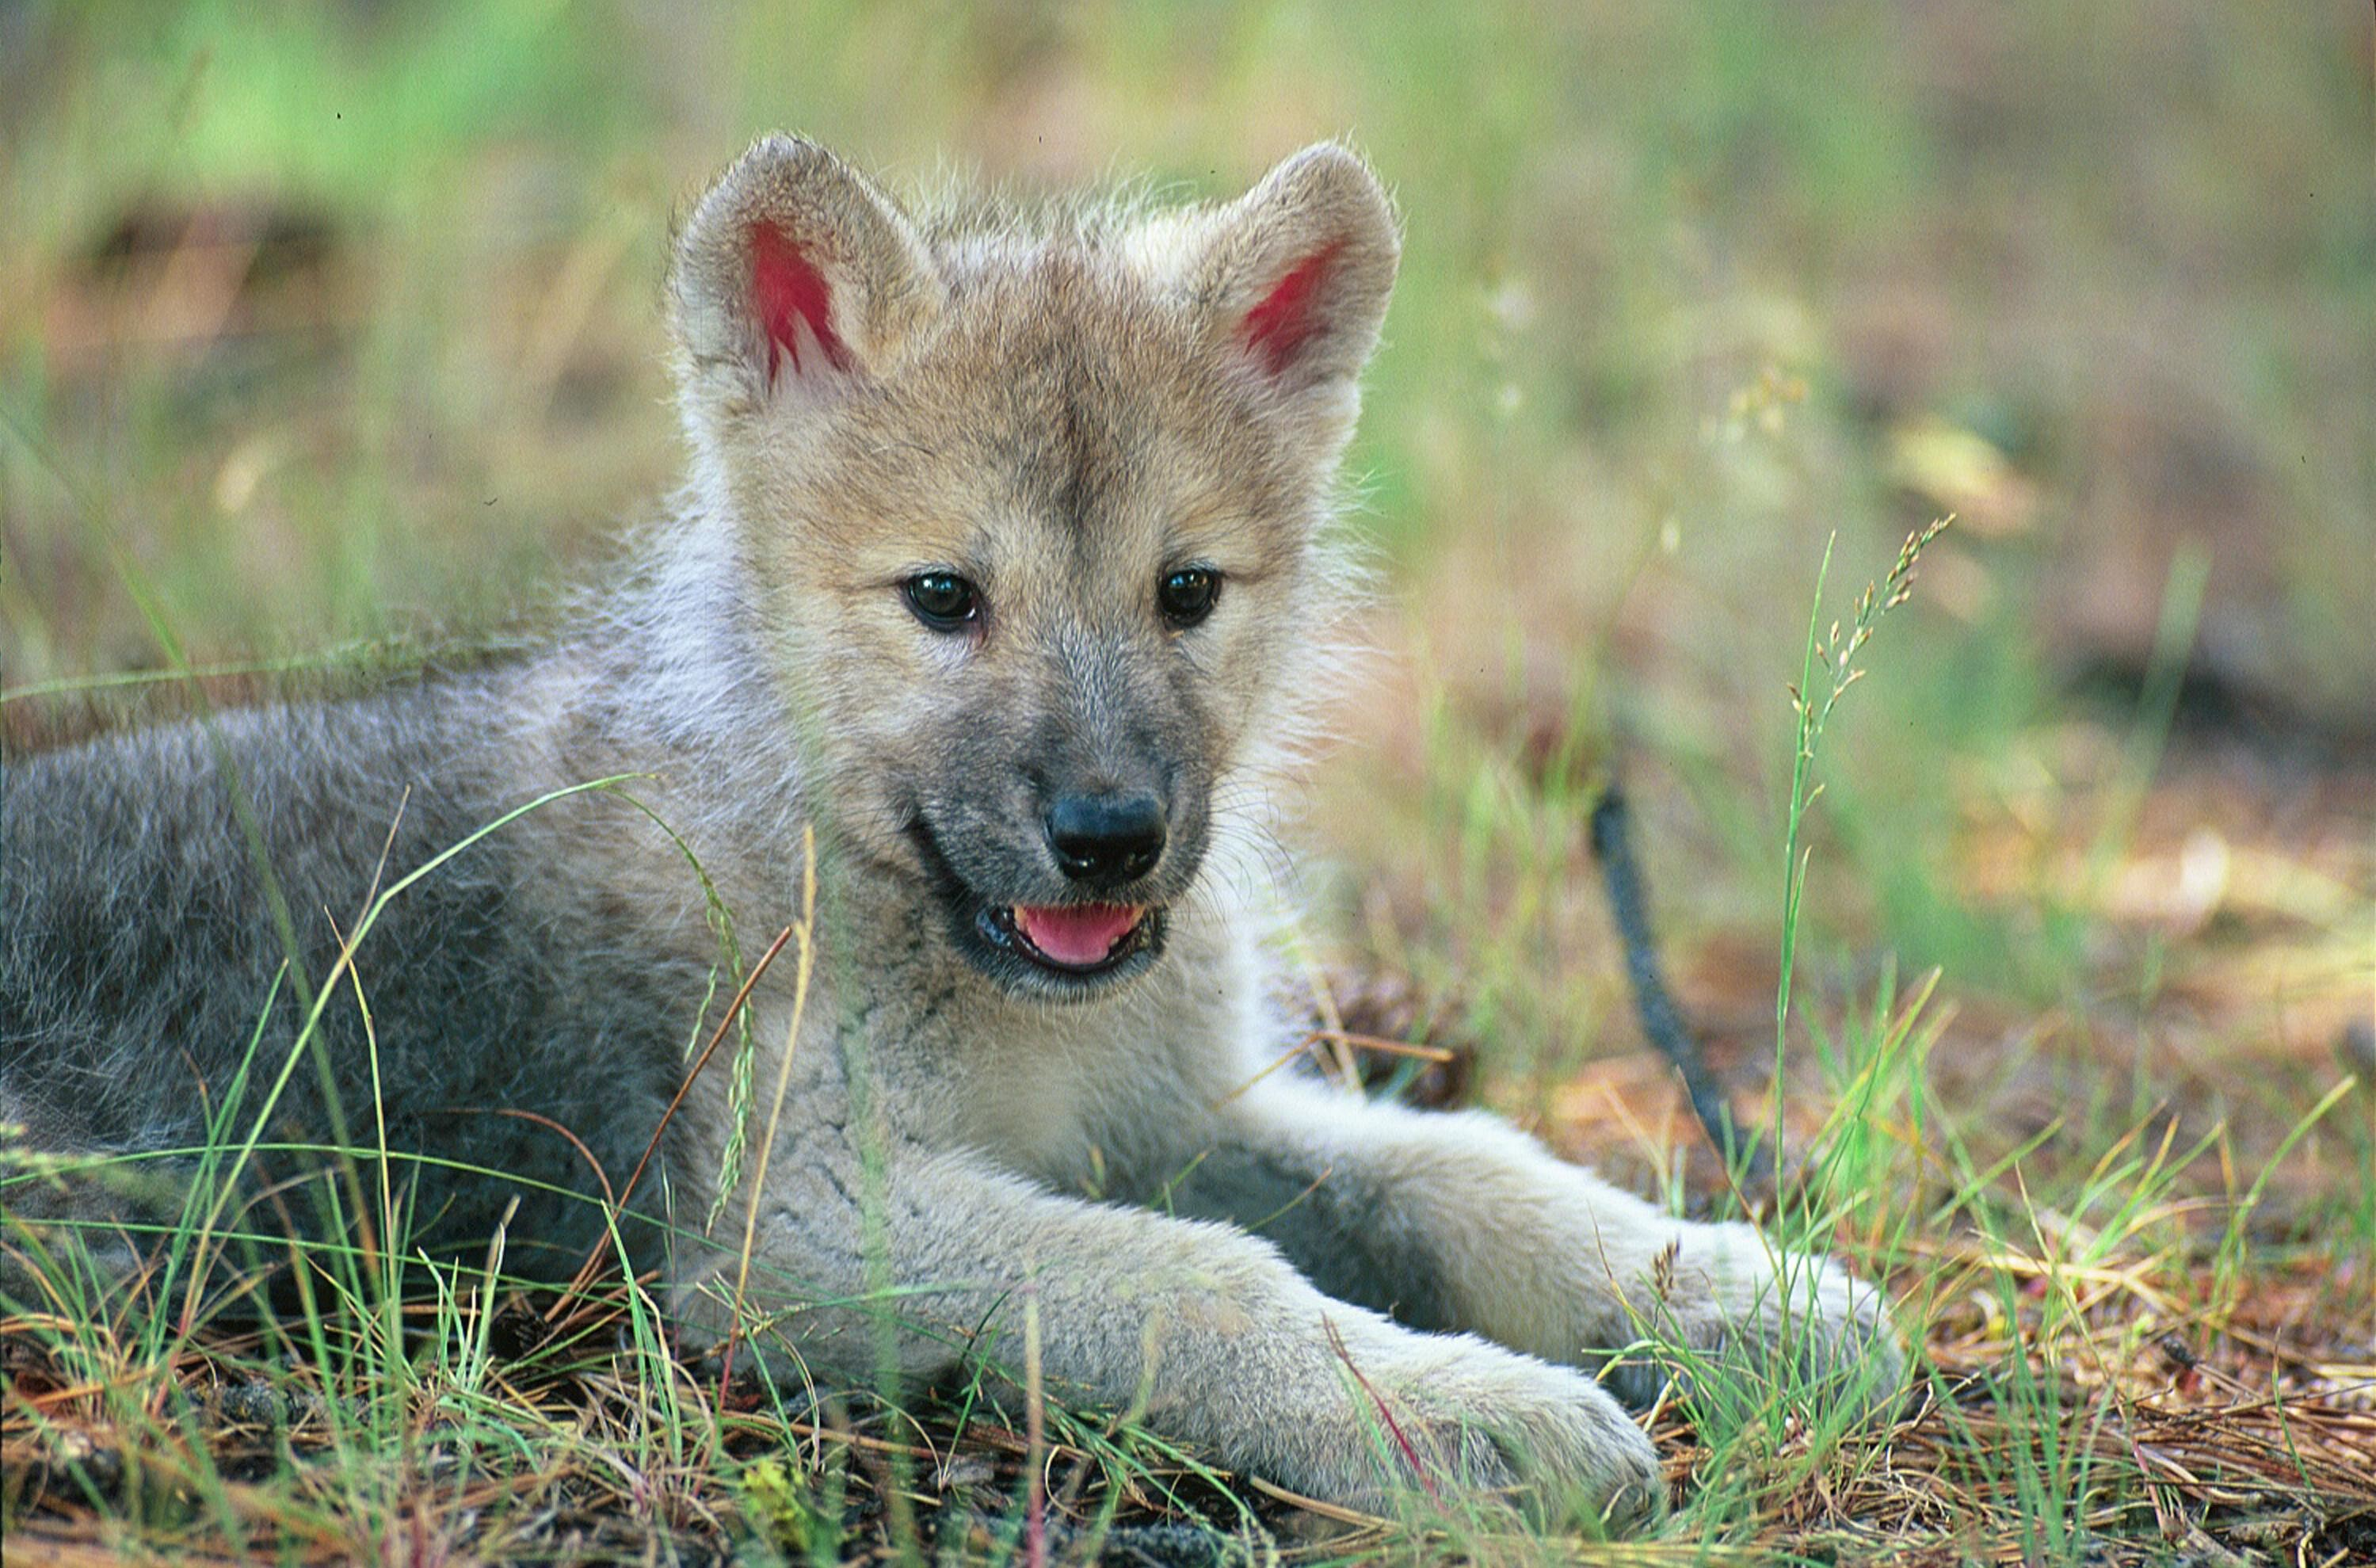 … baby wolf wallpaper on wallpaperget com …